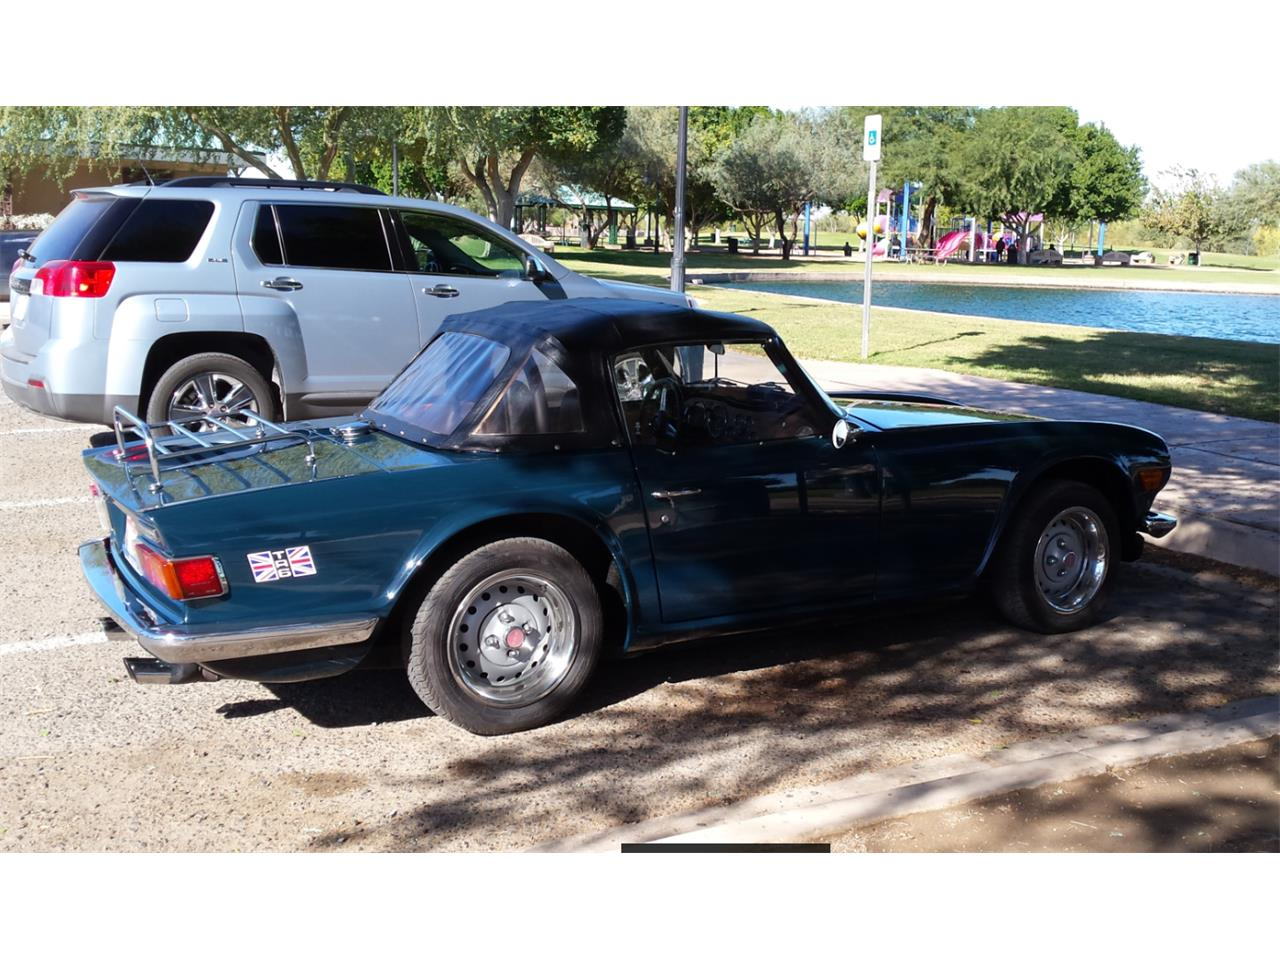 Large Picture of 1974 Triumph TR6 - $17,000.00 Offered by a Private Seller - JUCJ